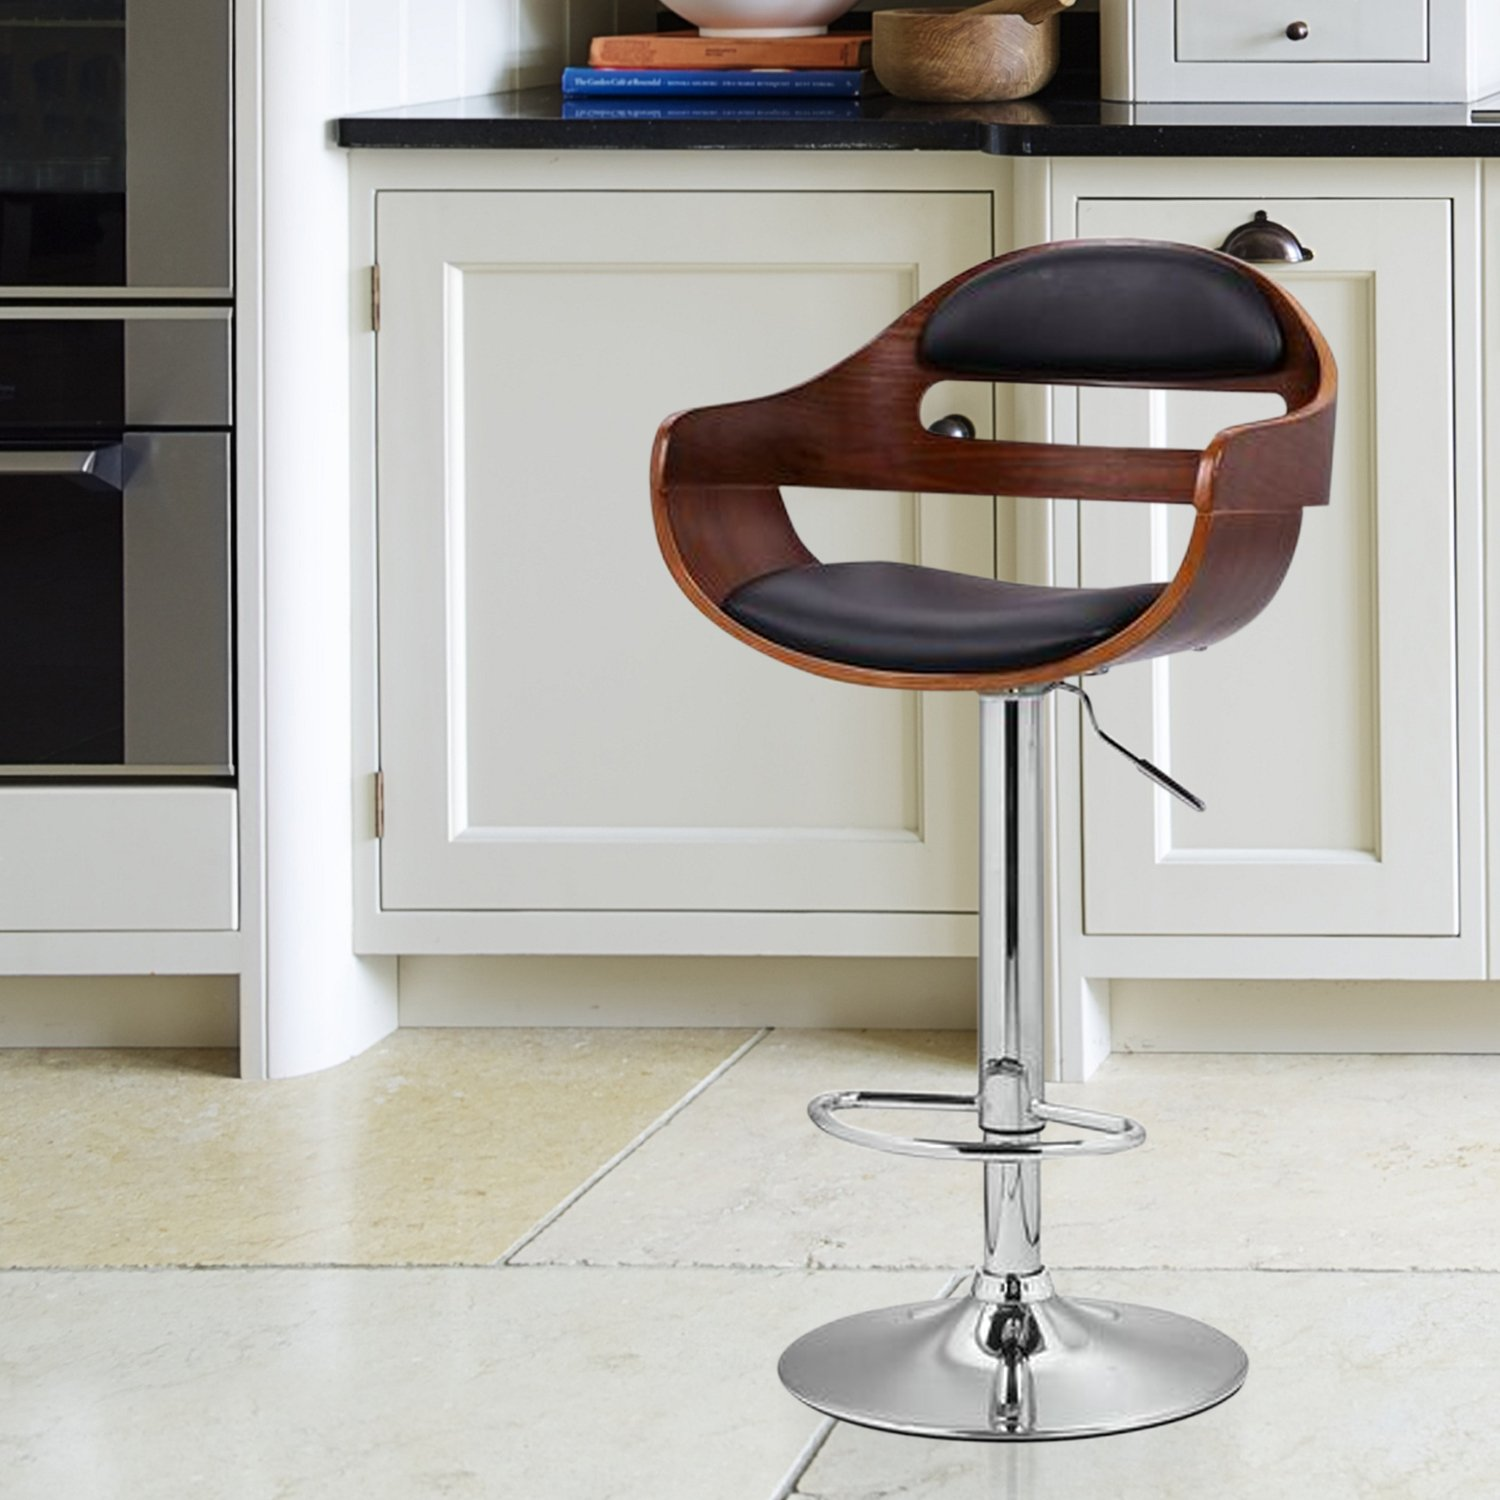 Amazon.com Joveco 360 Degree Swivel Adjustable Modern Leather Wood Bar Counter Stool Kitchen u0026 Dining & Amazon.com: Joveco 360 Degree Swivel Adjustable Modern Leather ... islam-shia.org